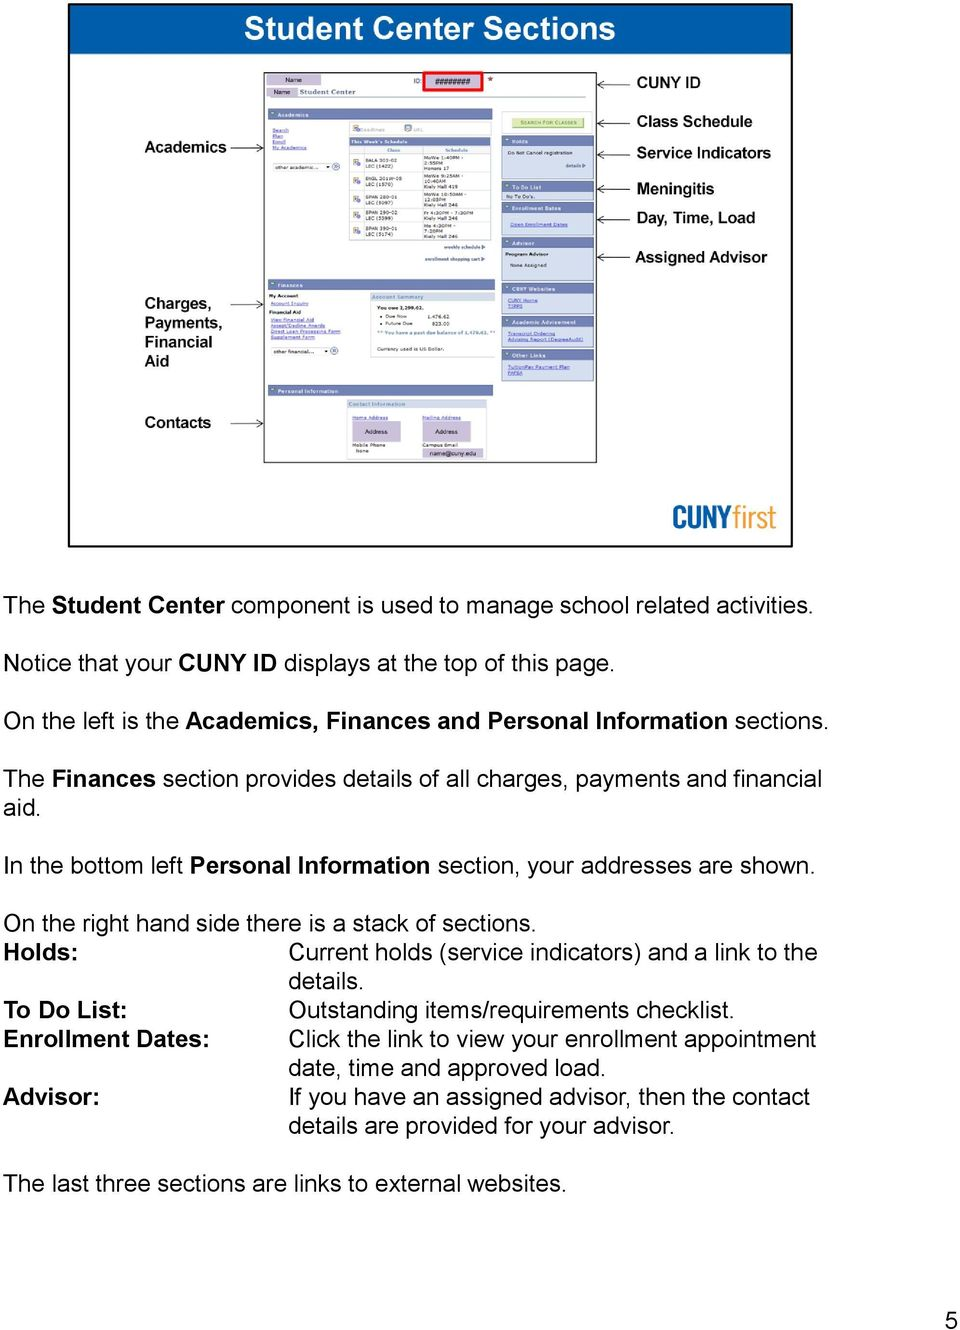 welcome to self service for students! - pdf